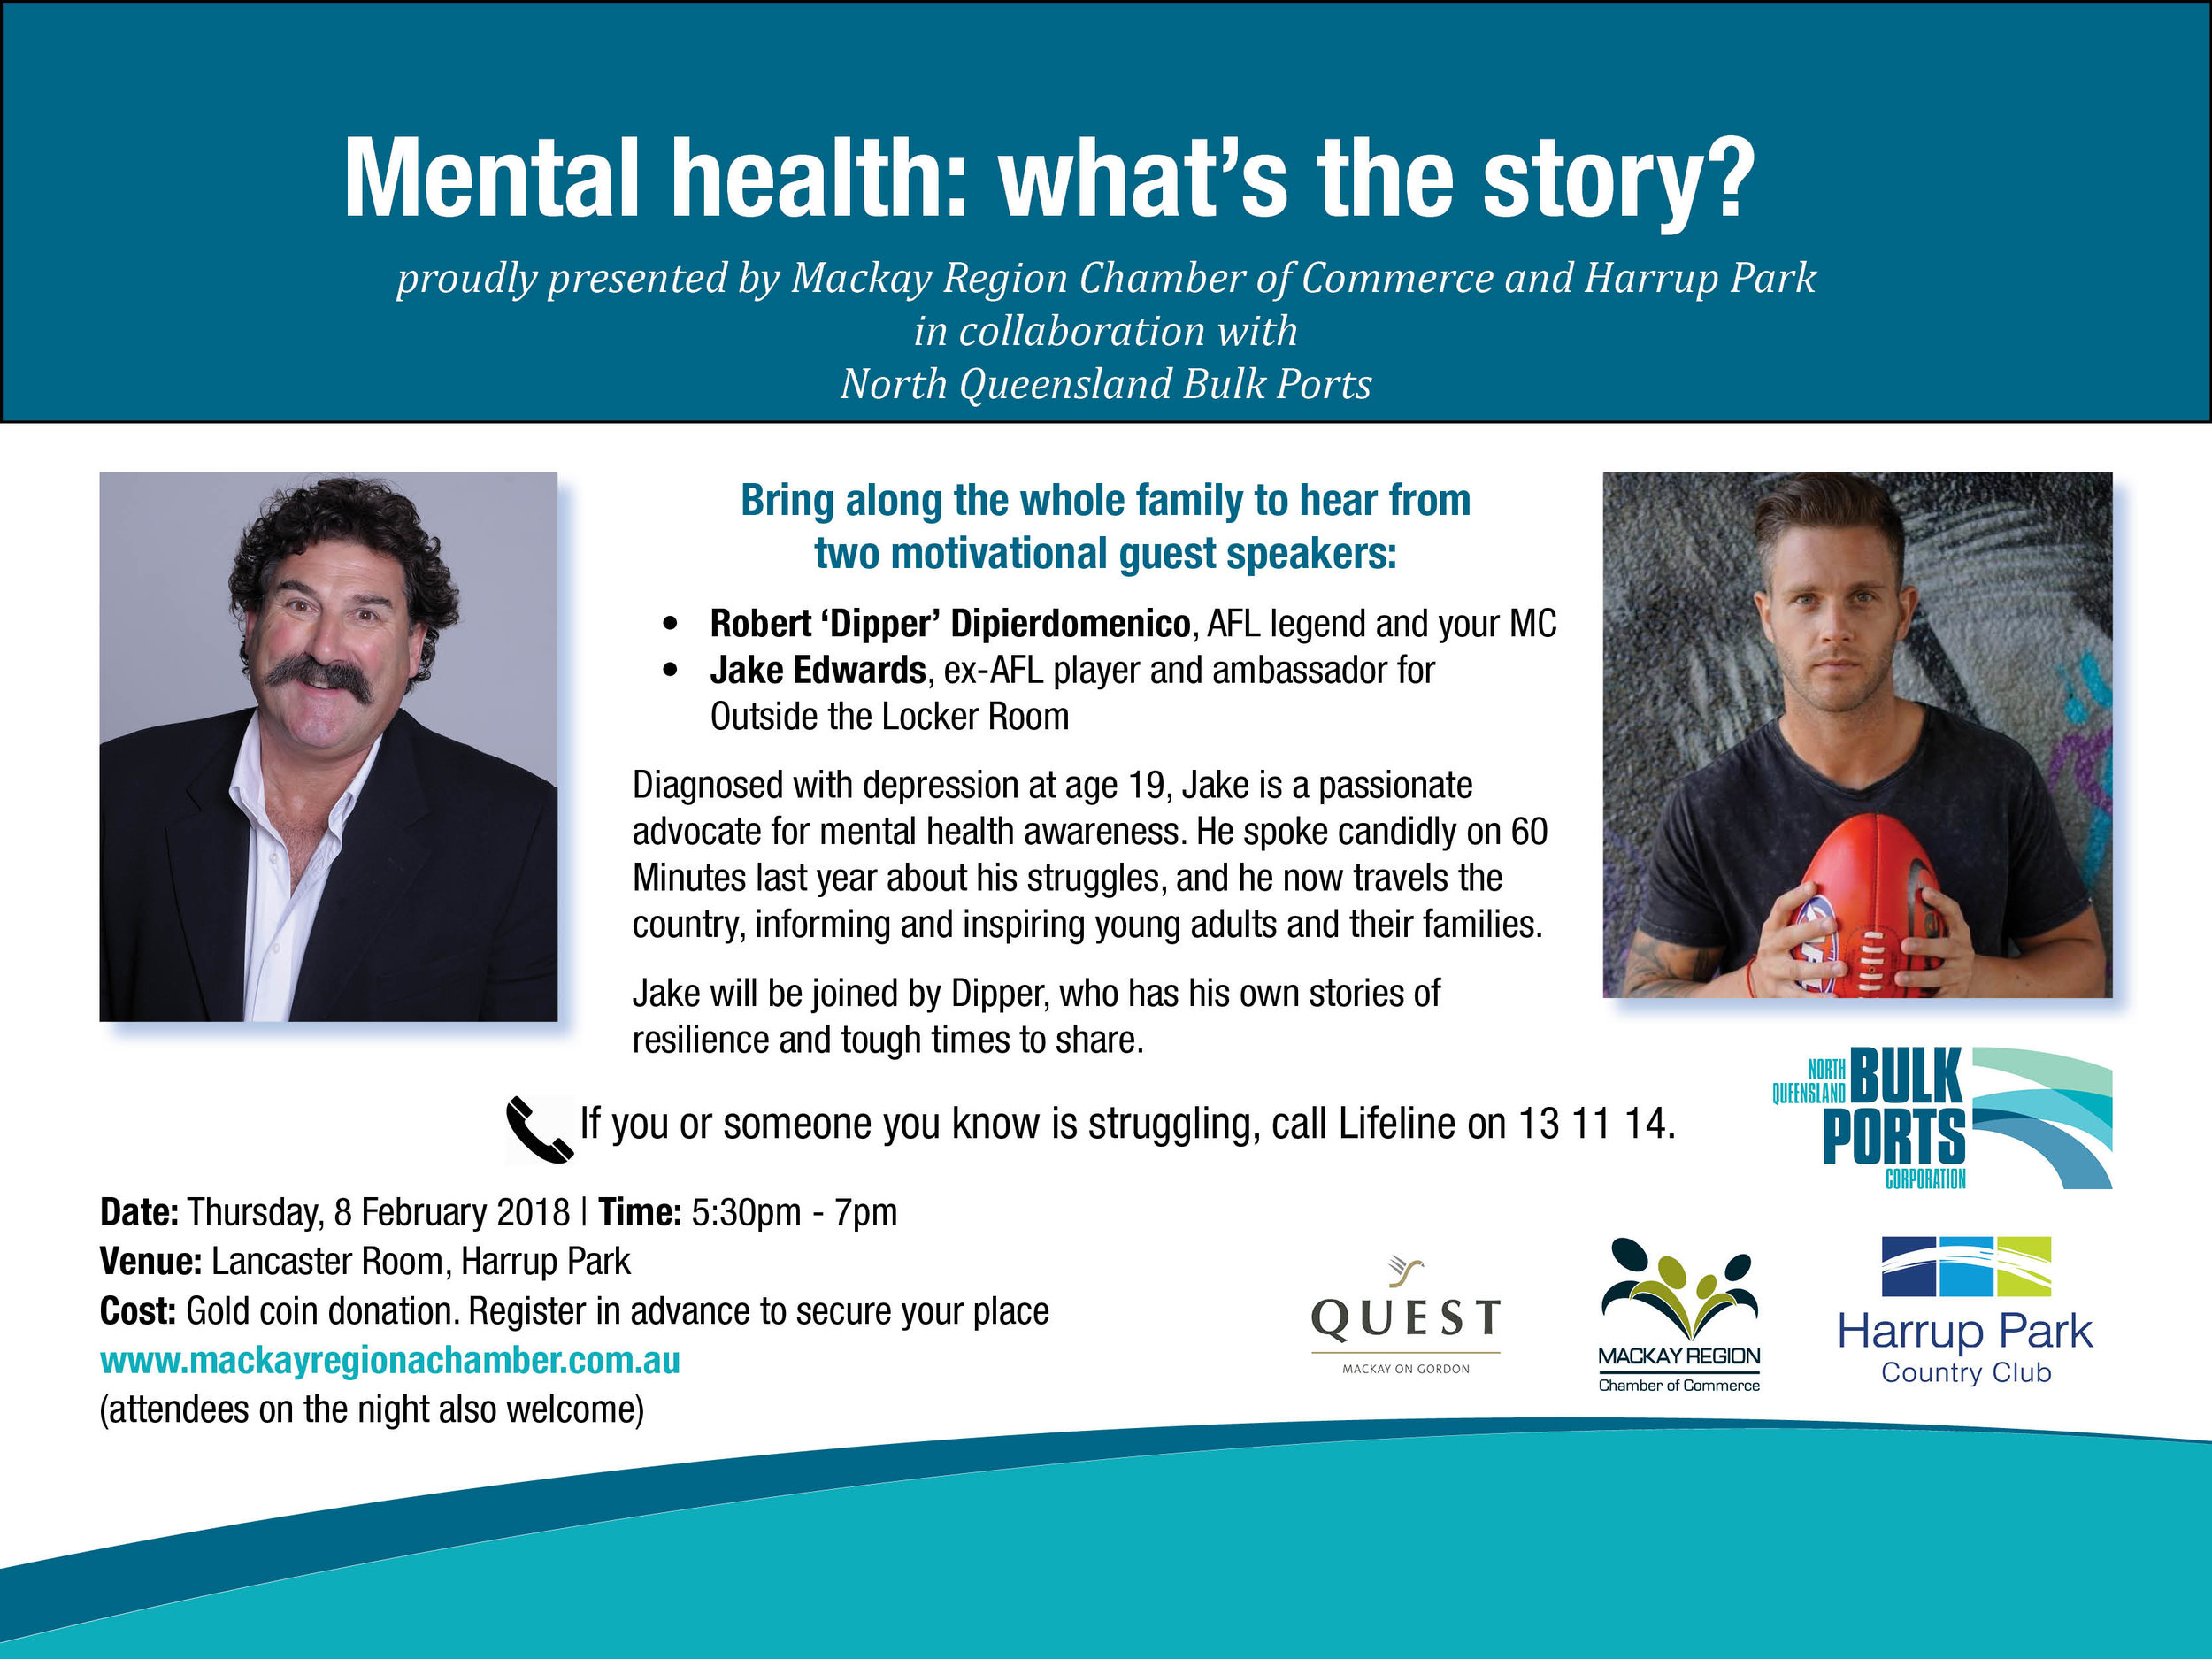 Mental health event invite - Jake Edwards and Dipper - Mackay 530pm 8 Feb 2018 v2.jpg